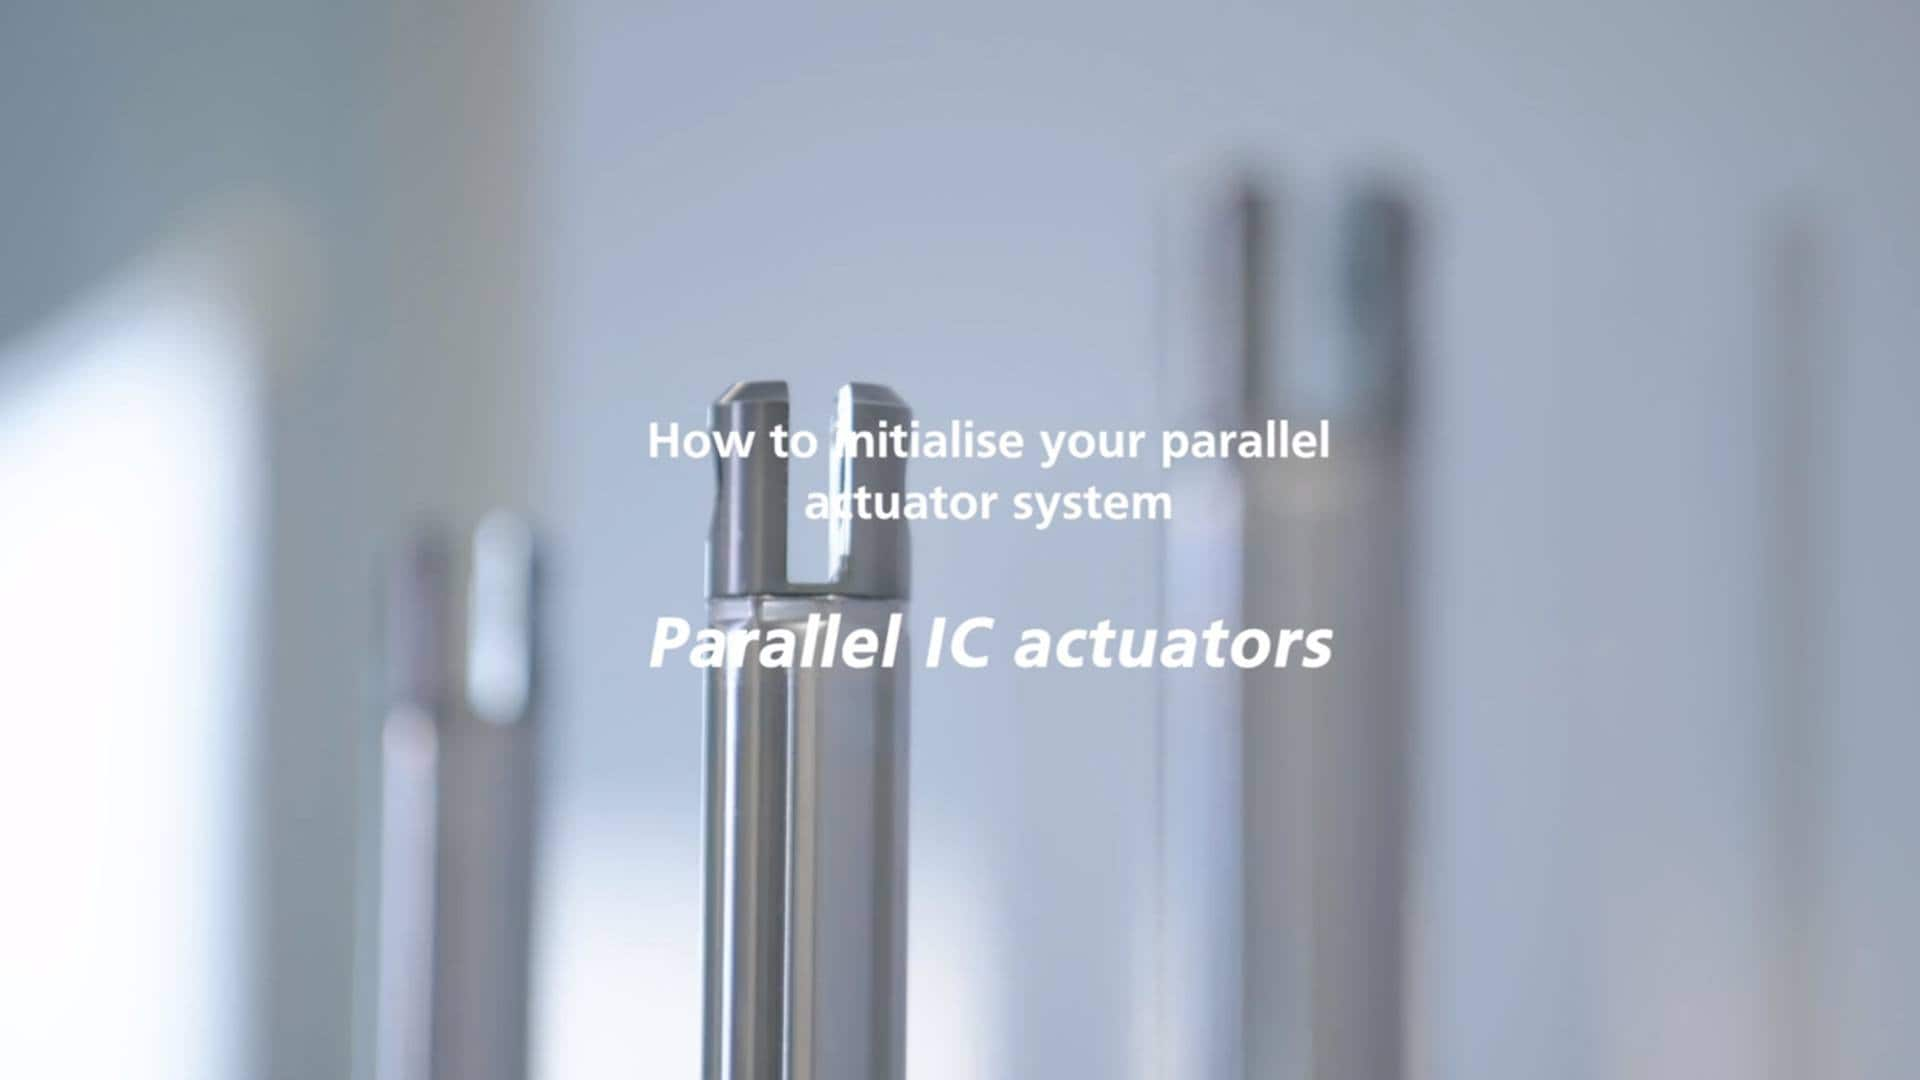 IC parallel actuator system - How to initialise the system